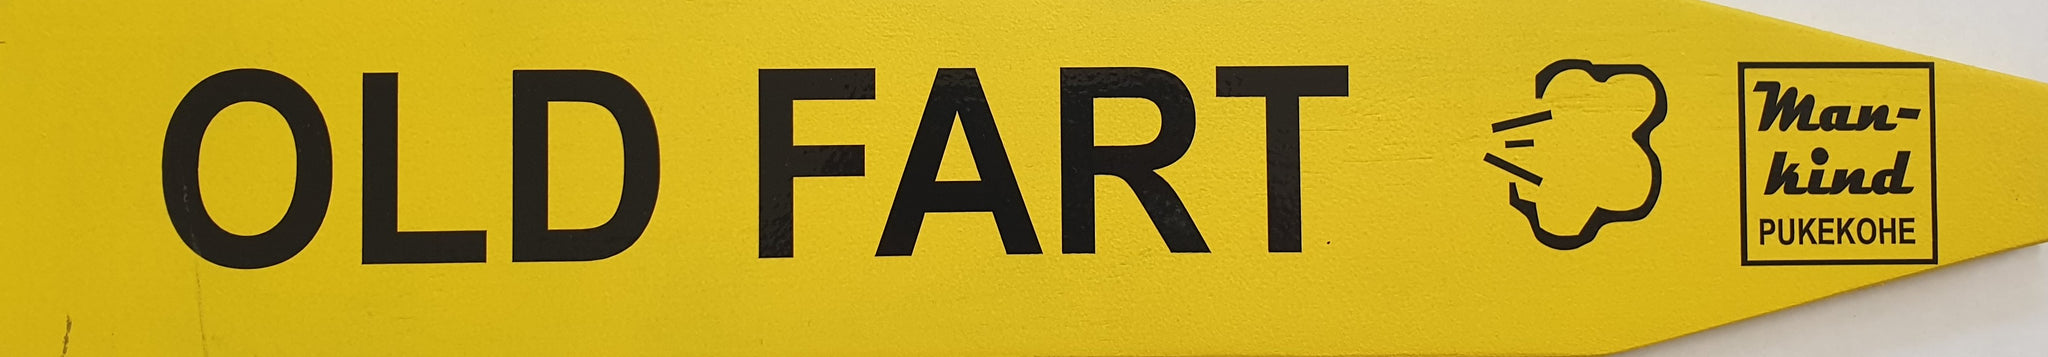 Street Sign 'Old Fart'